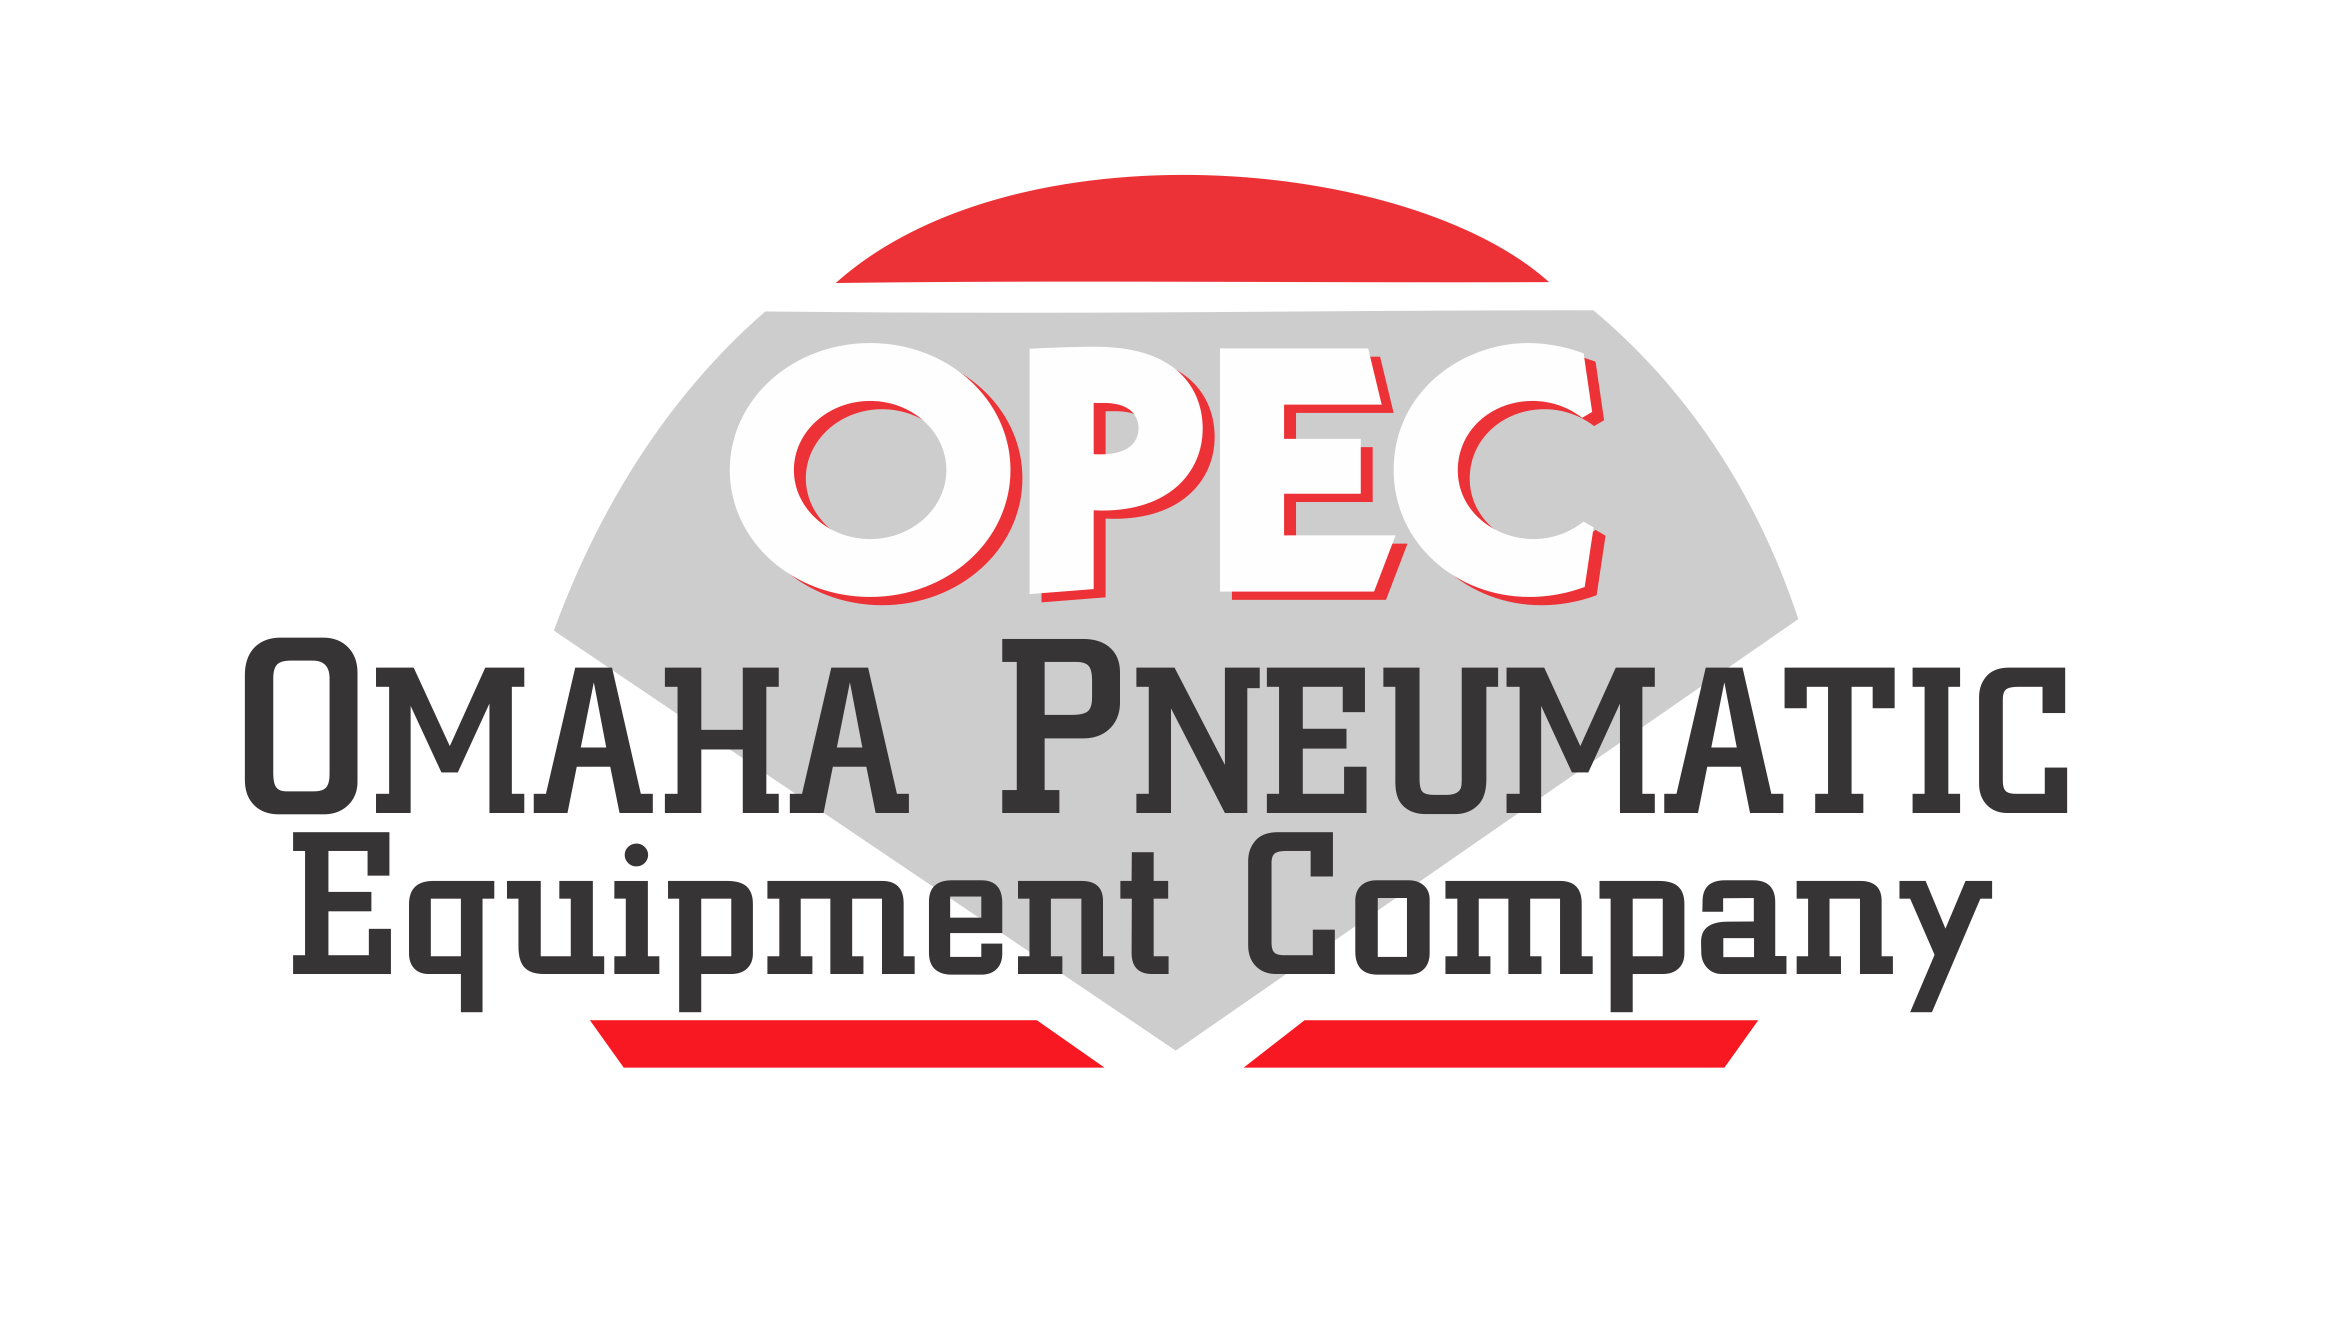 Omaha Pneumatic Equipment Company